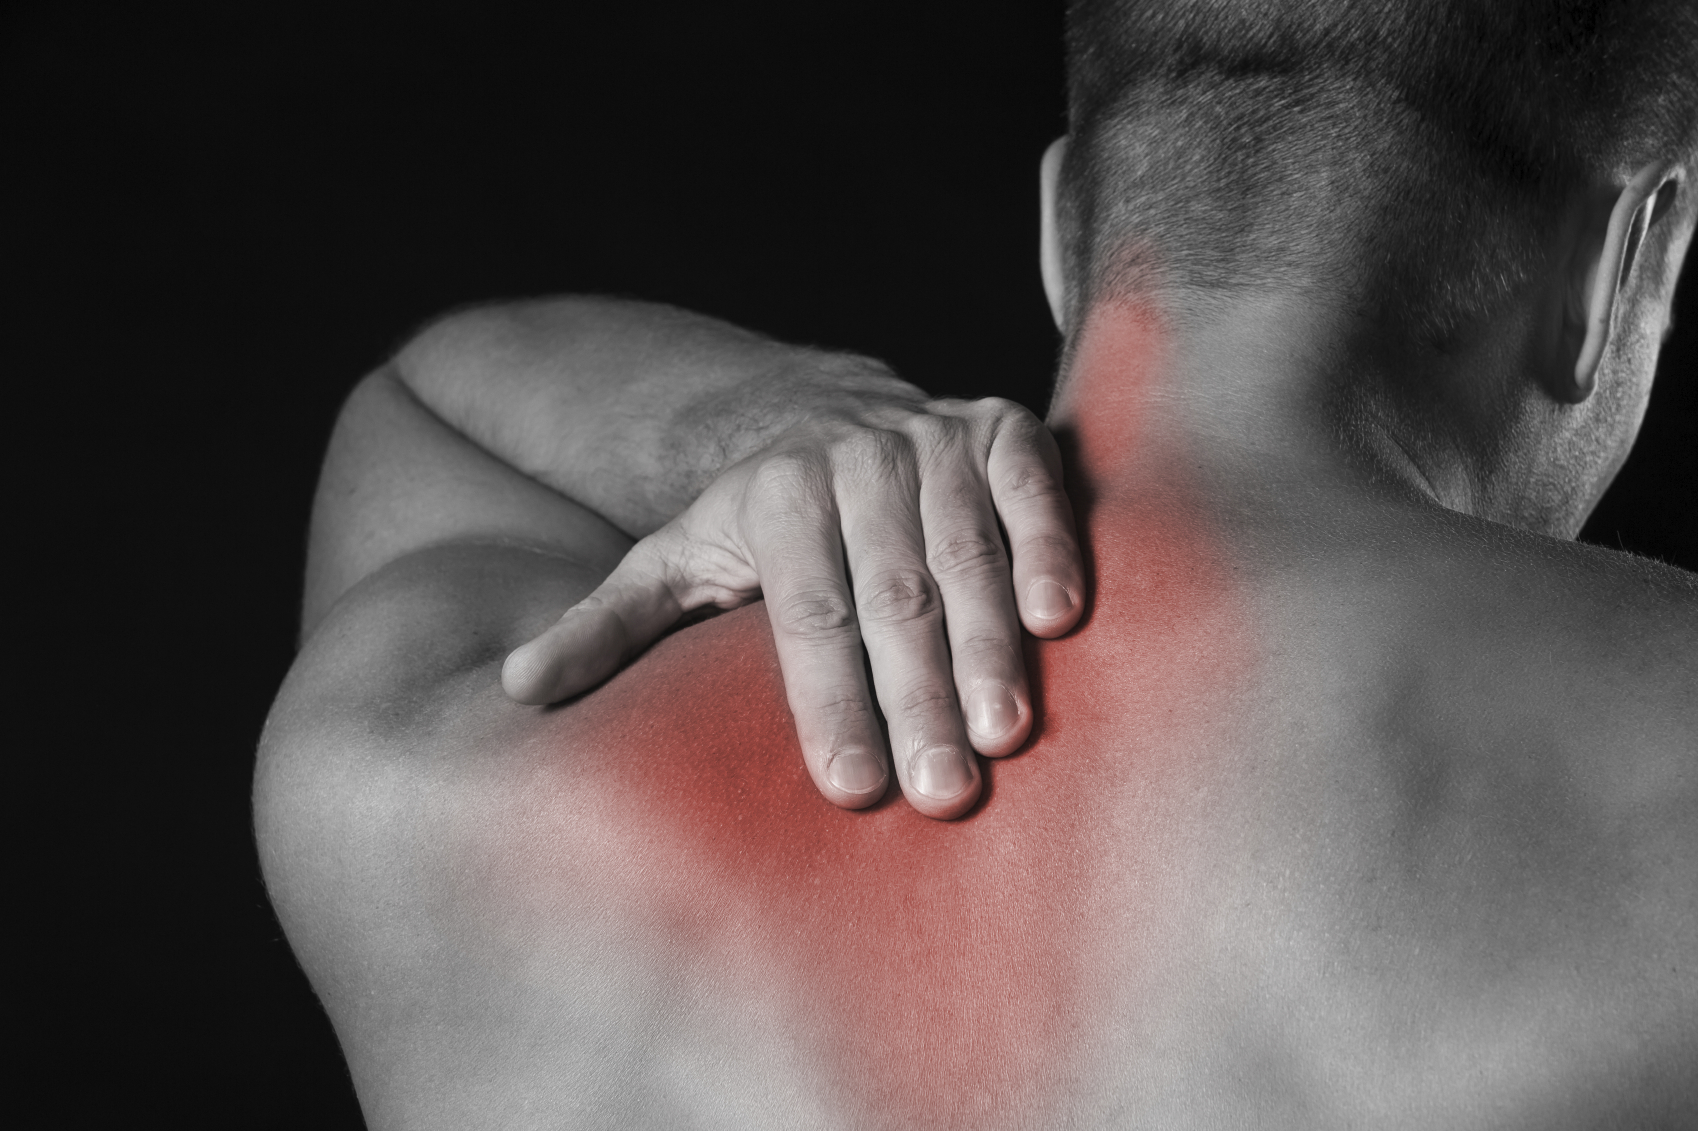 Should you get shoulder injections for pain?